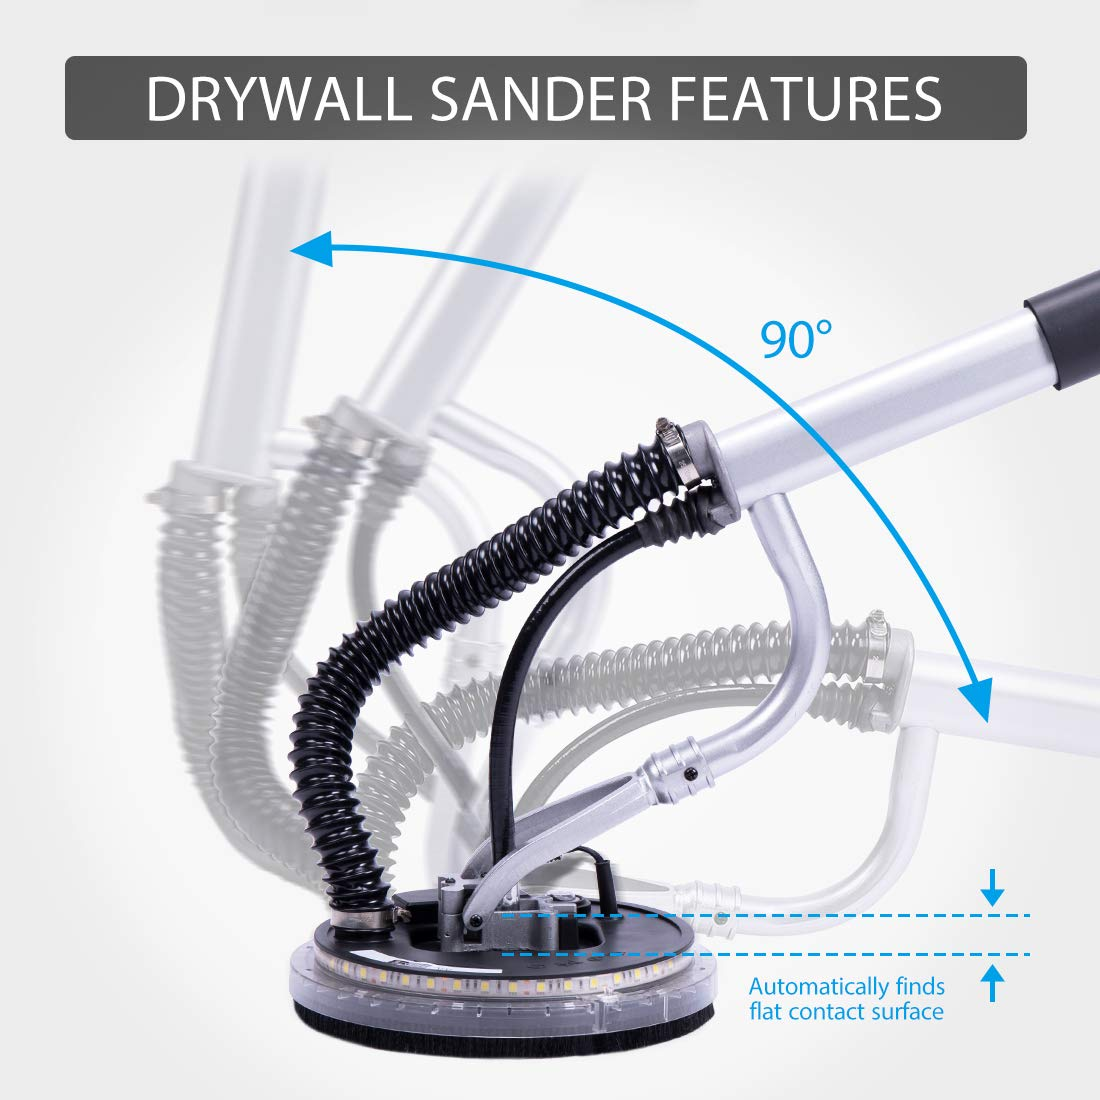 VIVOHOME V710DS Drywall Sanders product image 4